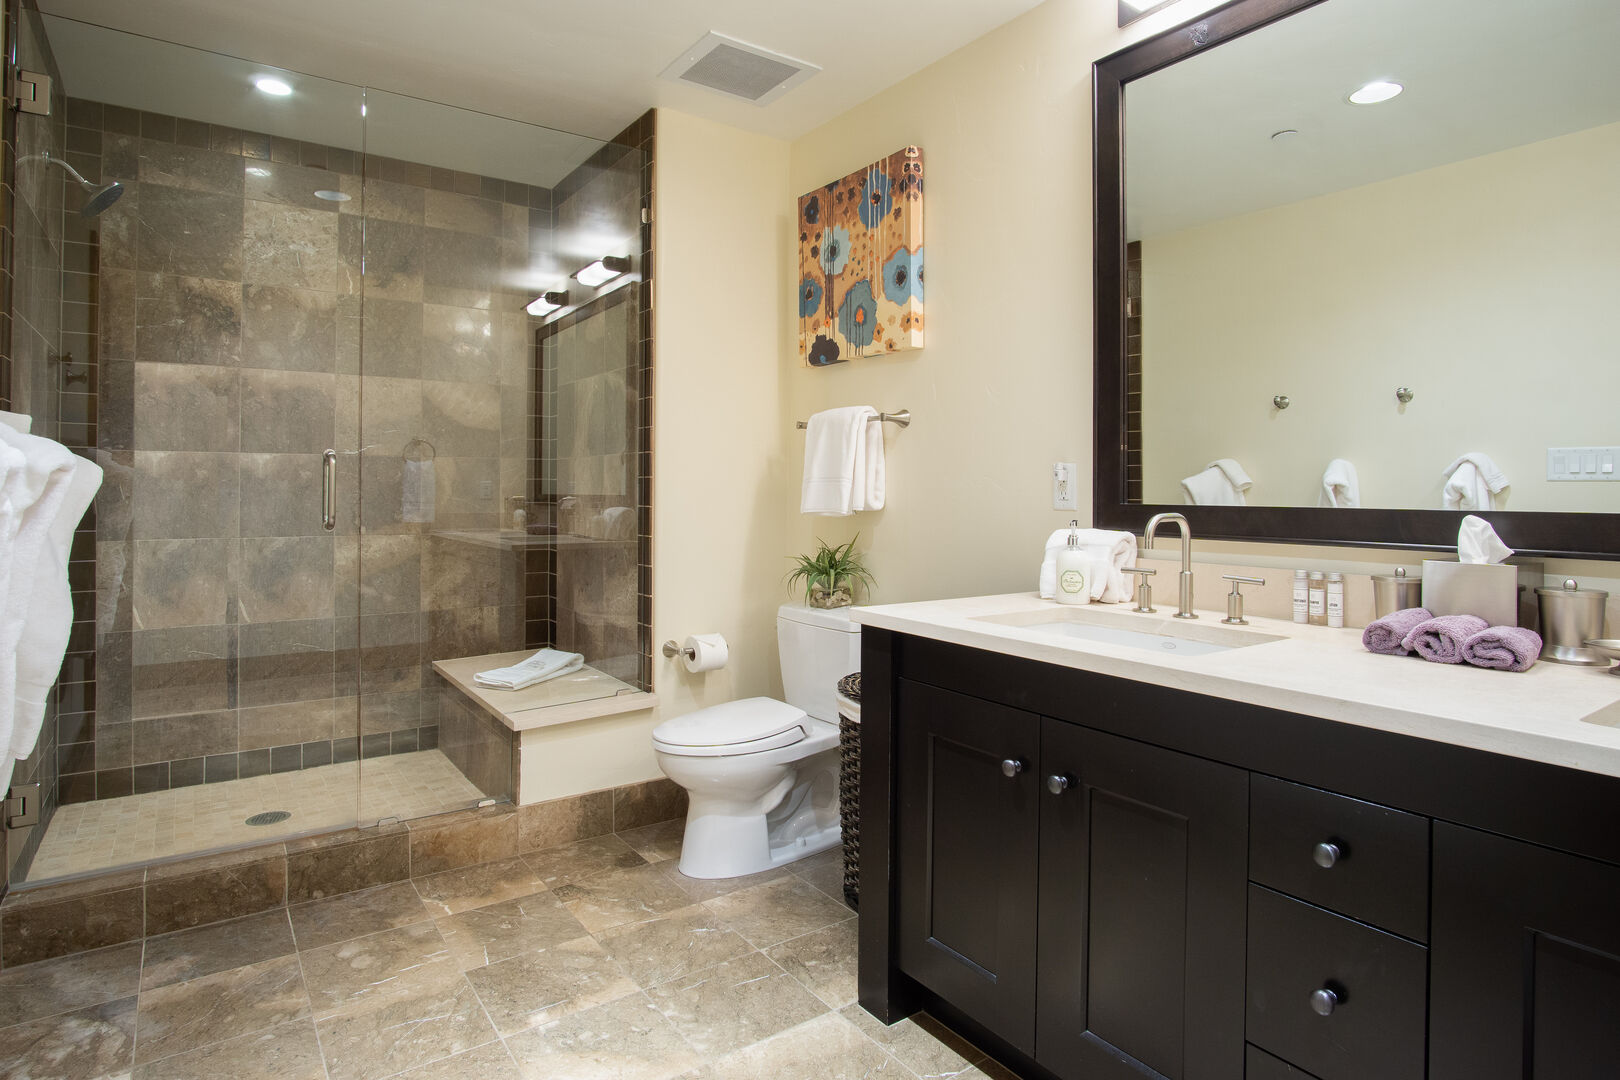 Bathroom with Large Shower, Double Sink Vanity, and Mirror.